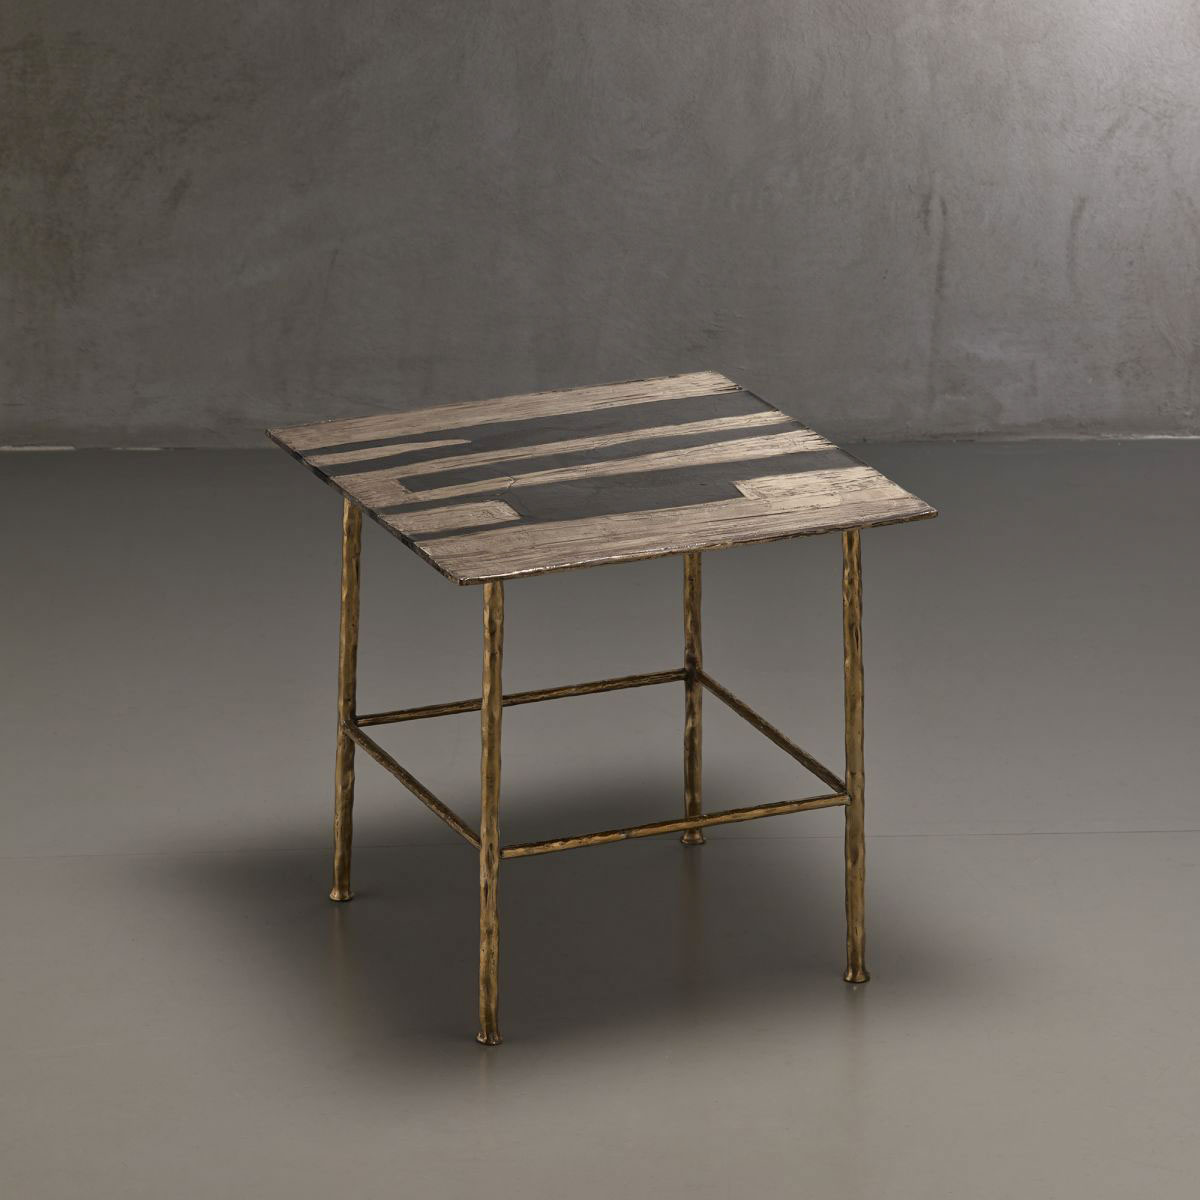 'Tracce' collection low table Osanna Visconti pic-1